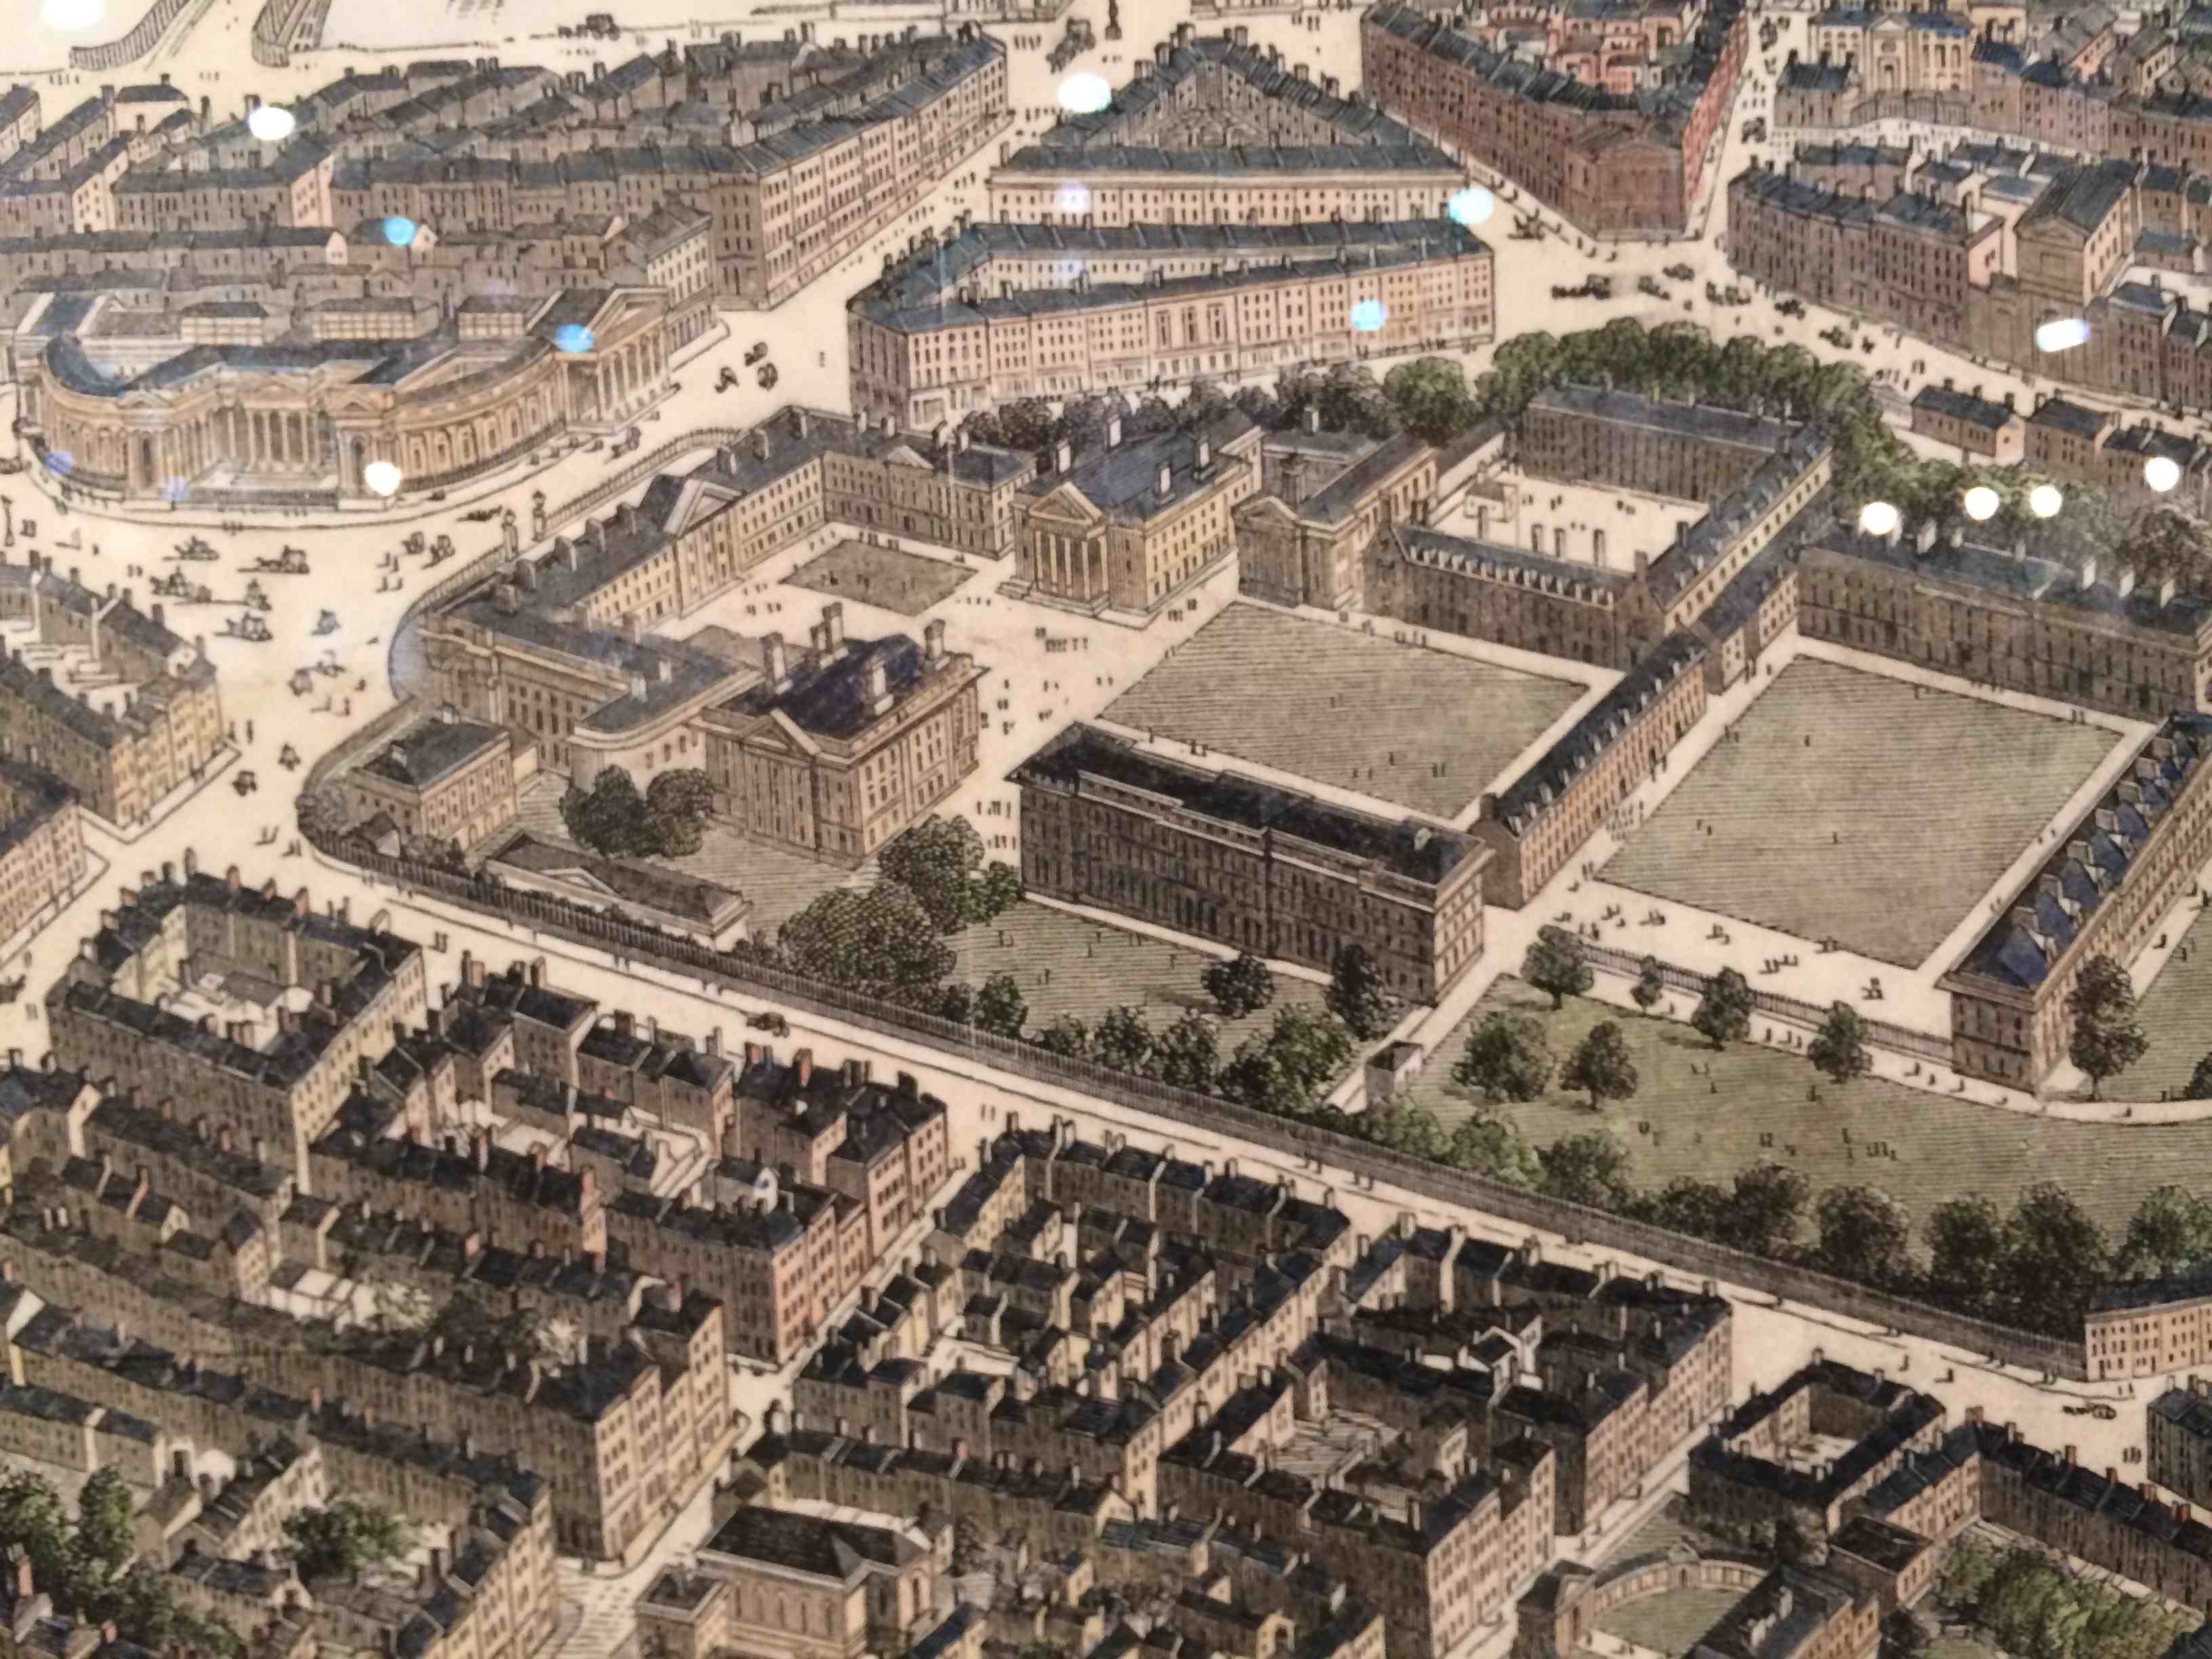 Image: detail from Bird's Eye View of Dublin from the London Illustrated News c1848